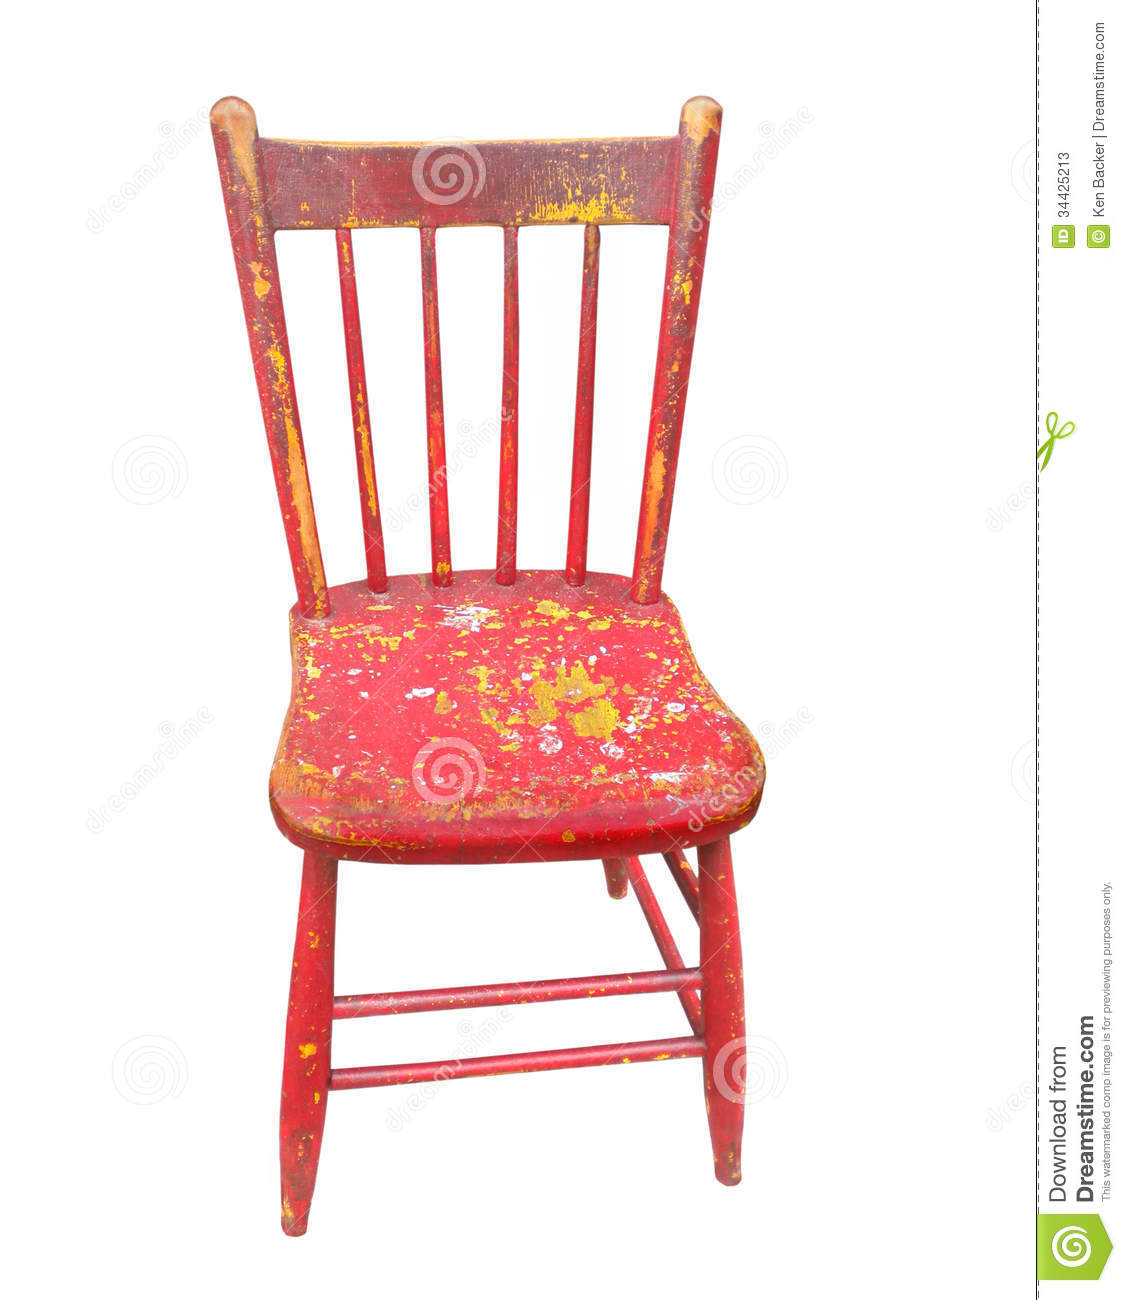 Old Wooden Red Chair Isolated Stock Photos Image 34425213